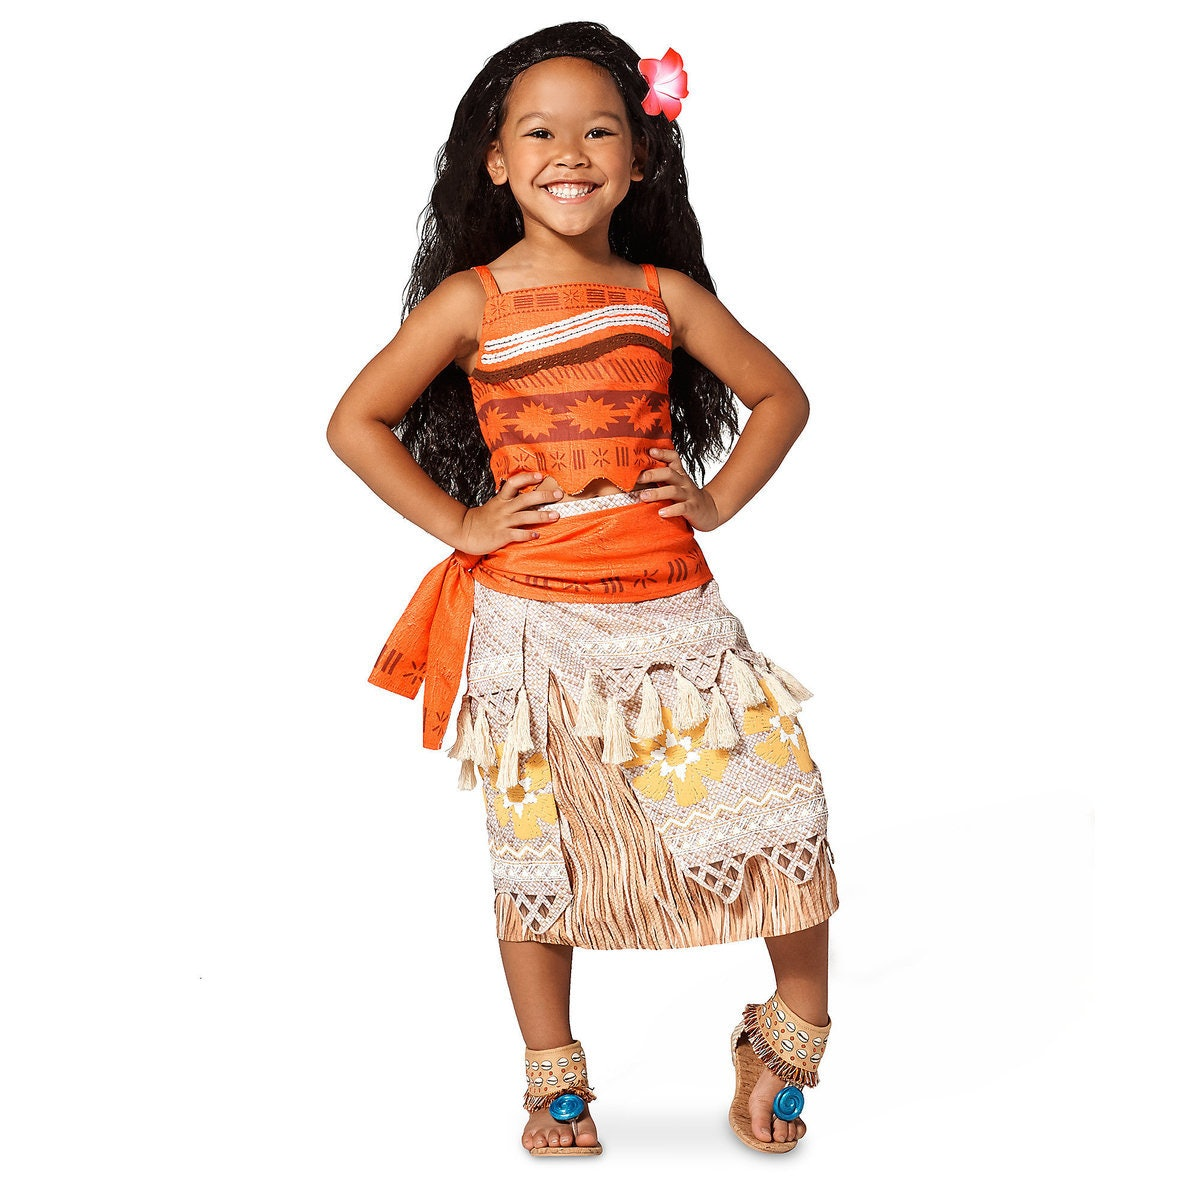 8 Moana Halloween Costume Ideas For Toddlers That Will Make A Splash